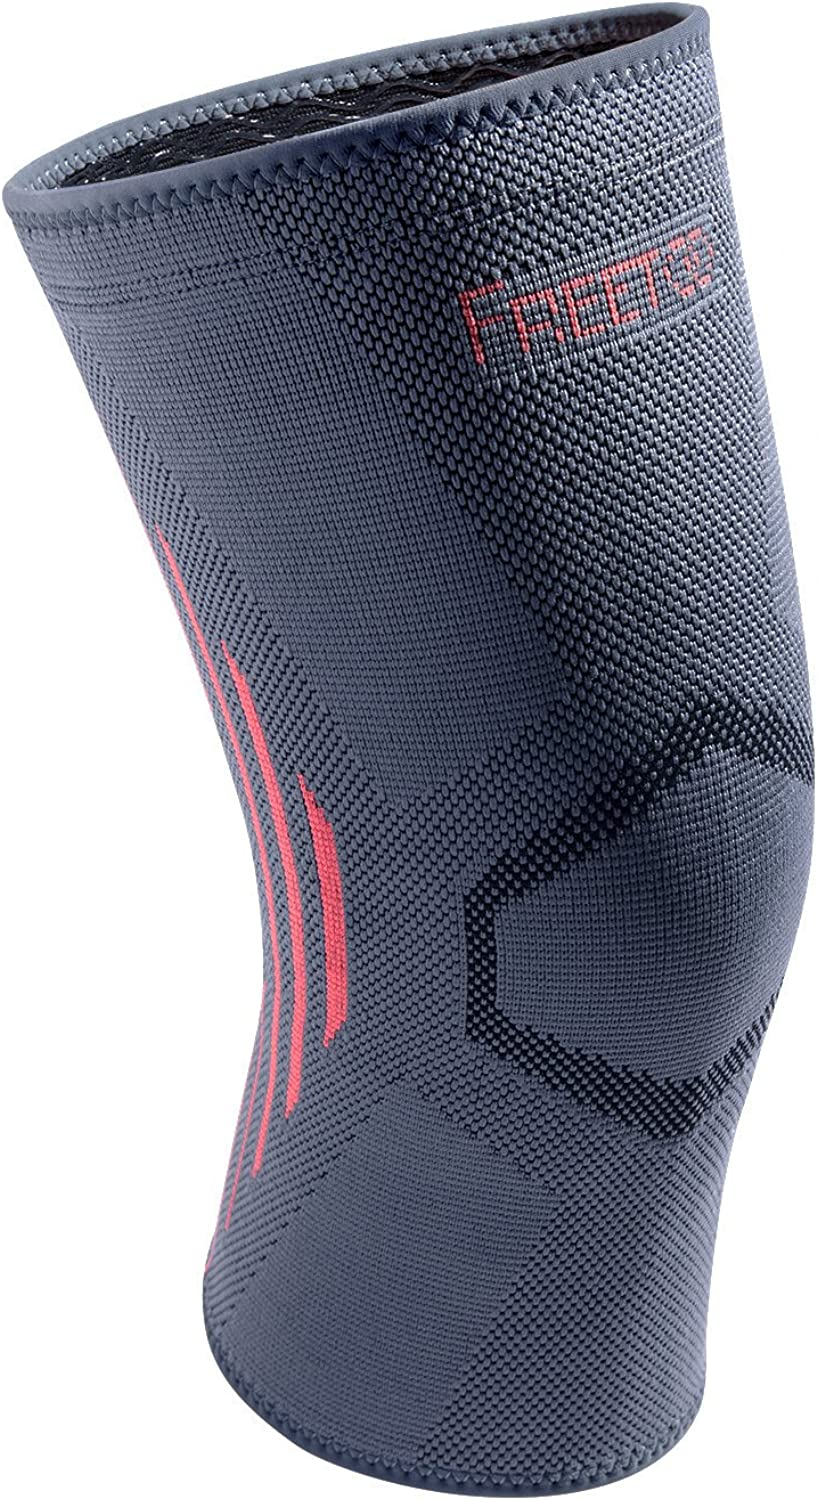 FREETOO Compression Knee Brace Knee Brace Knee Compression Sleeve Support for Running Sports Basketball Jogging Arthritis Joint Pain Relief Injury RecoverySingle